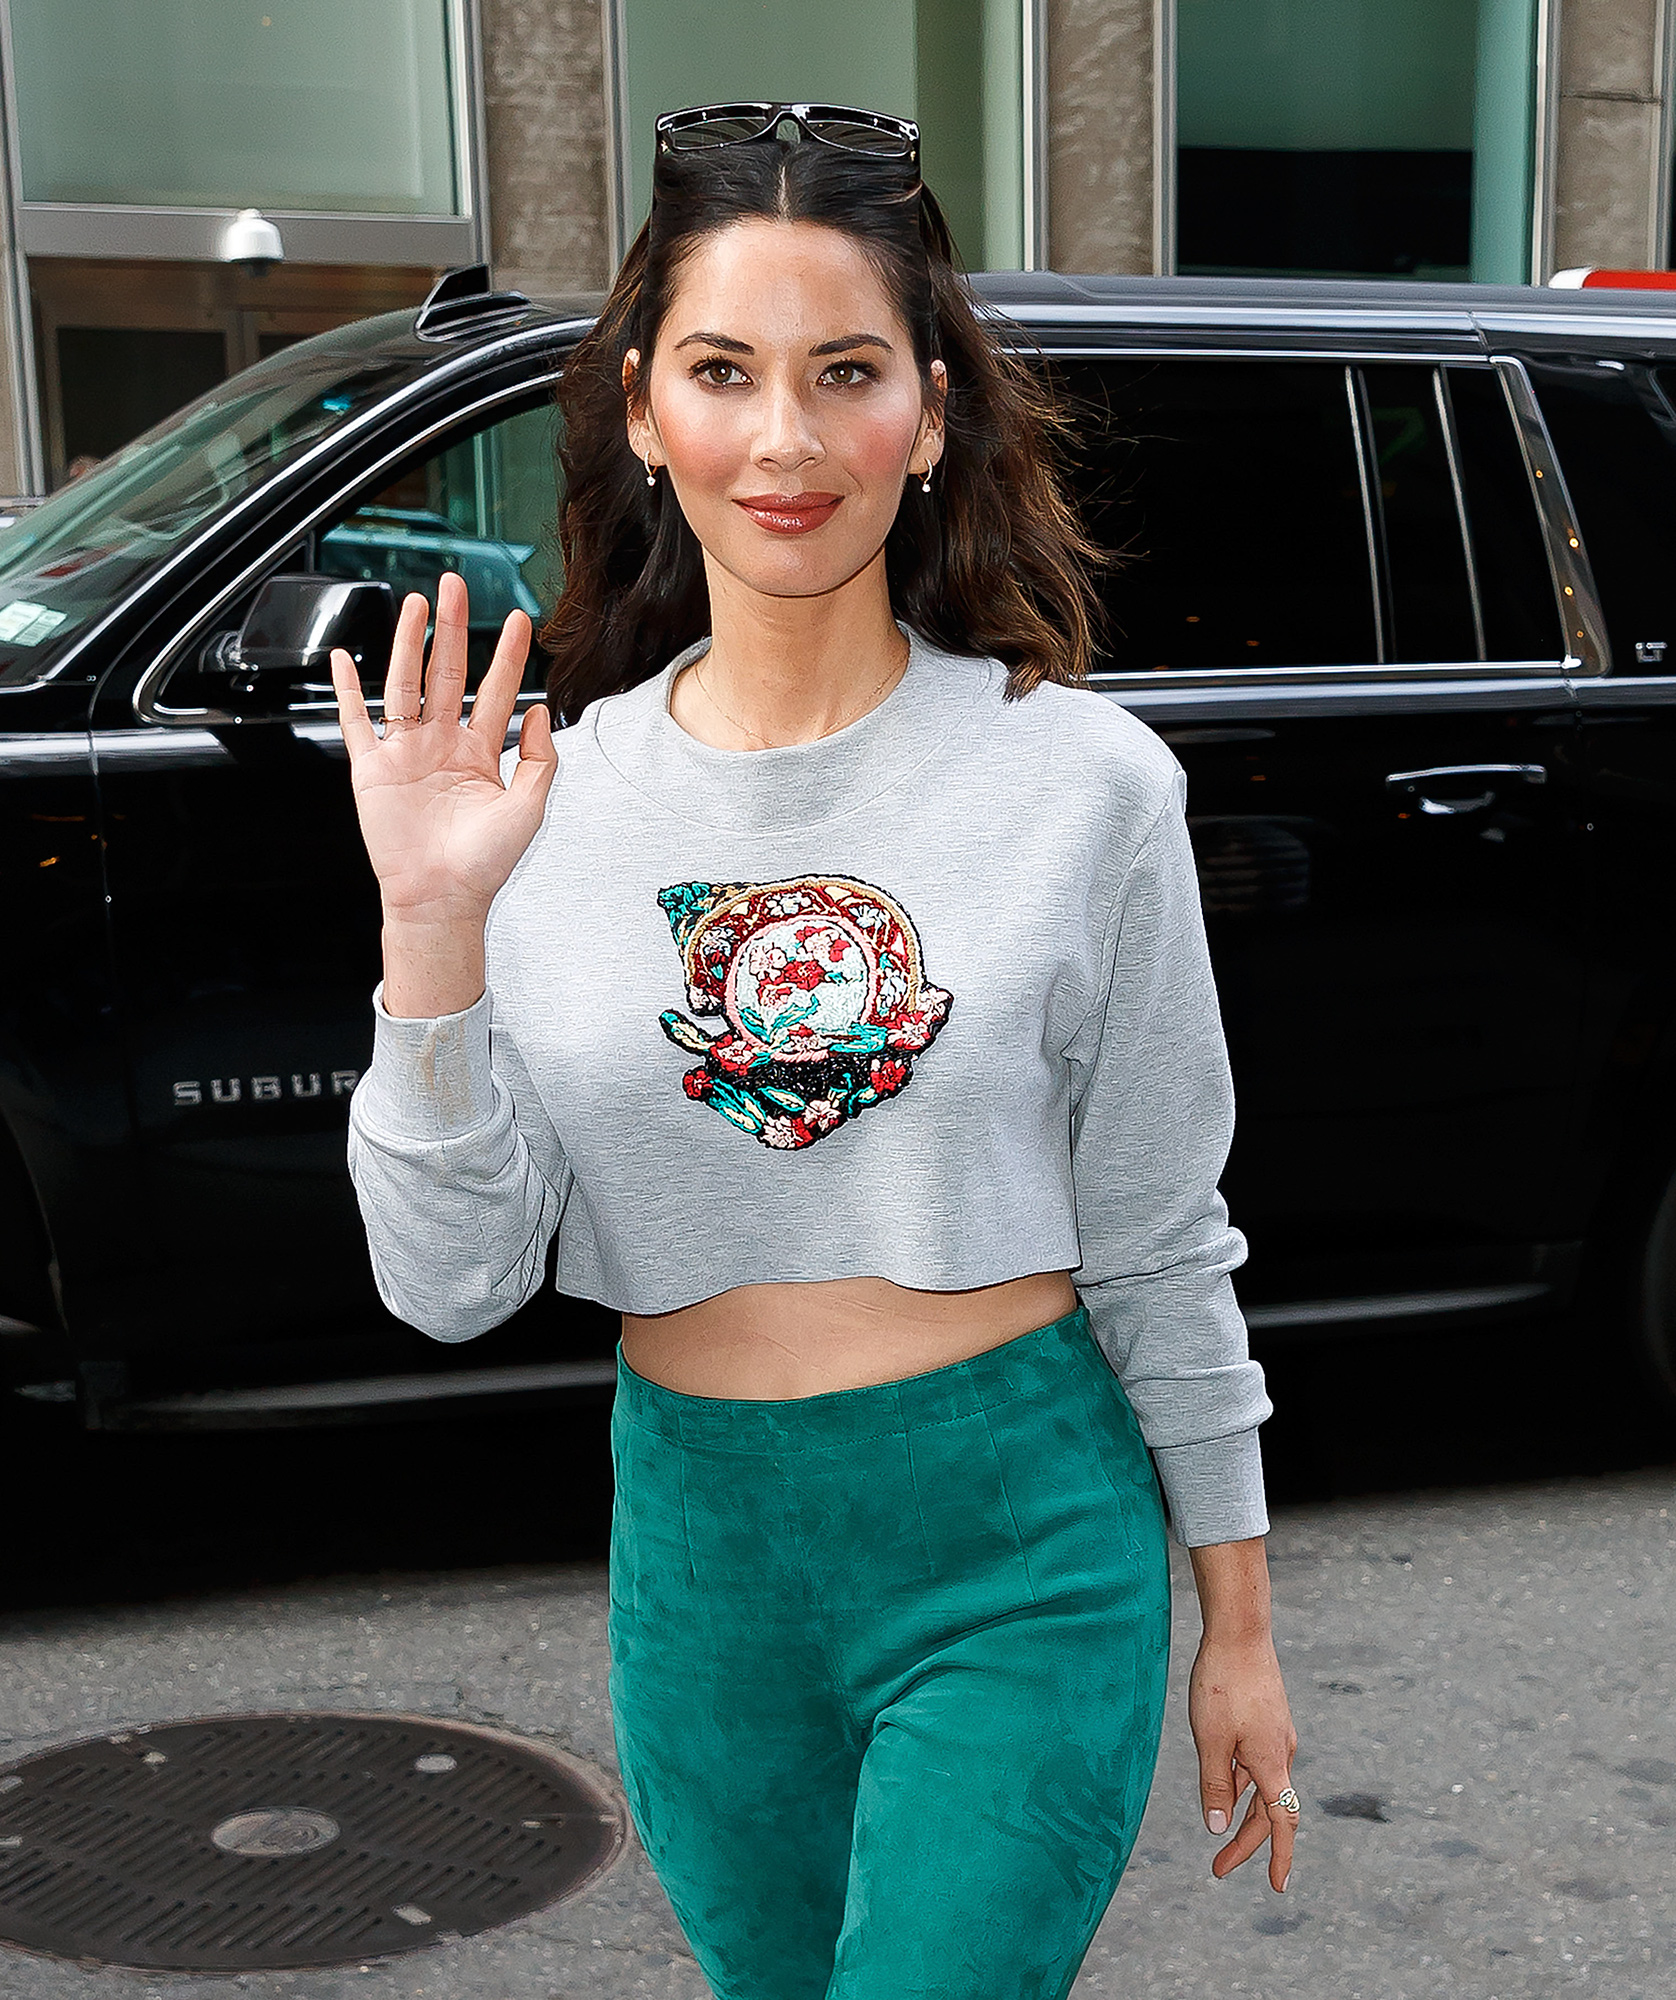 Olivia Munn wears a cropped sweatshirt and turquoise pants in New York